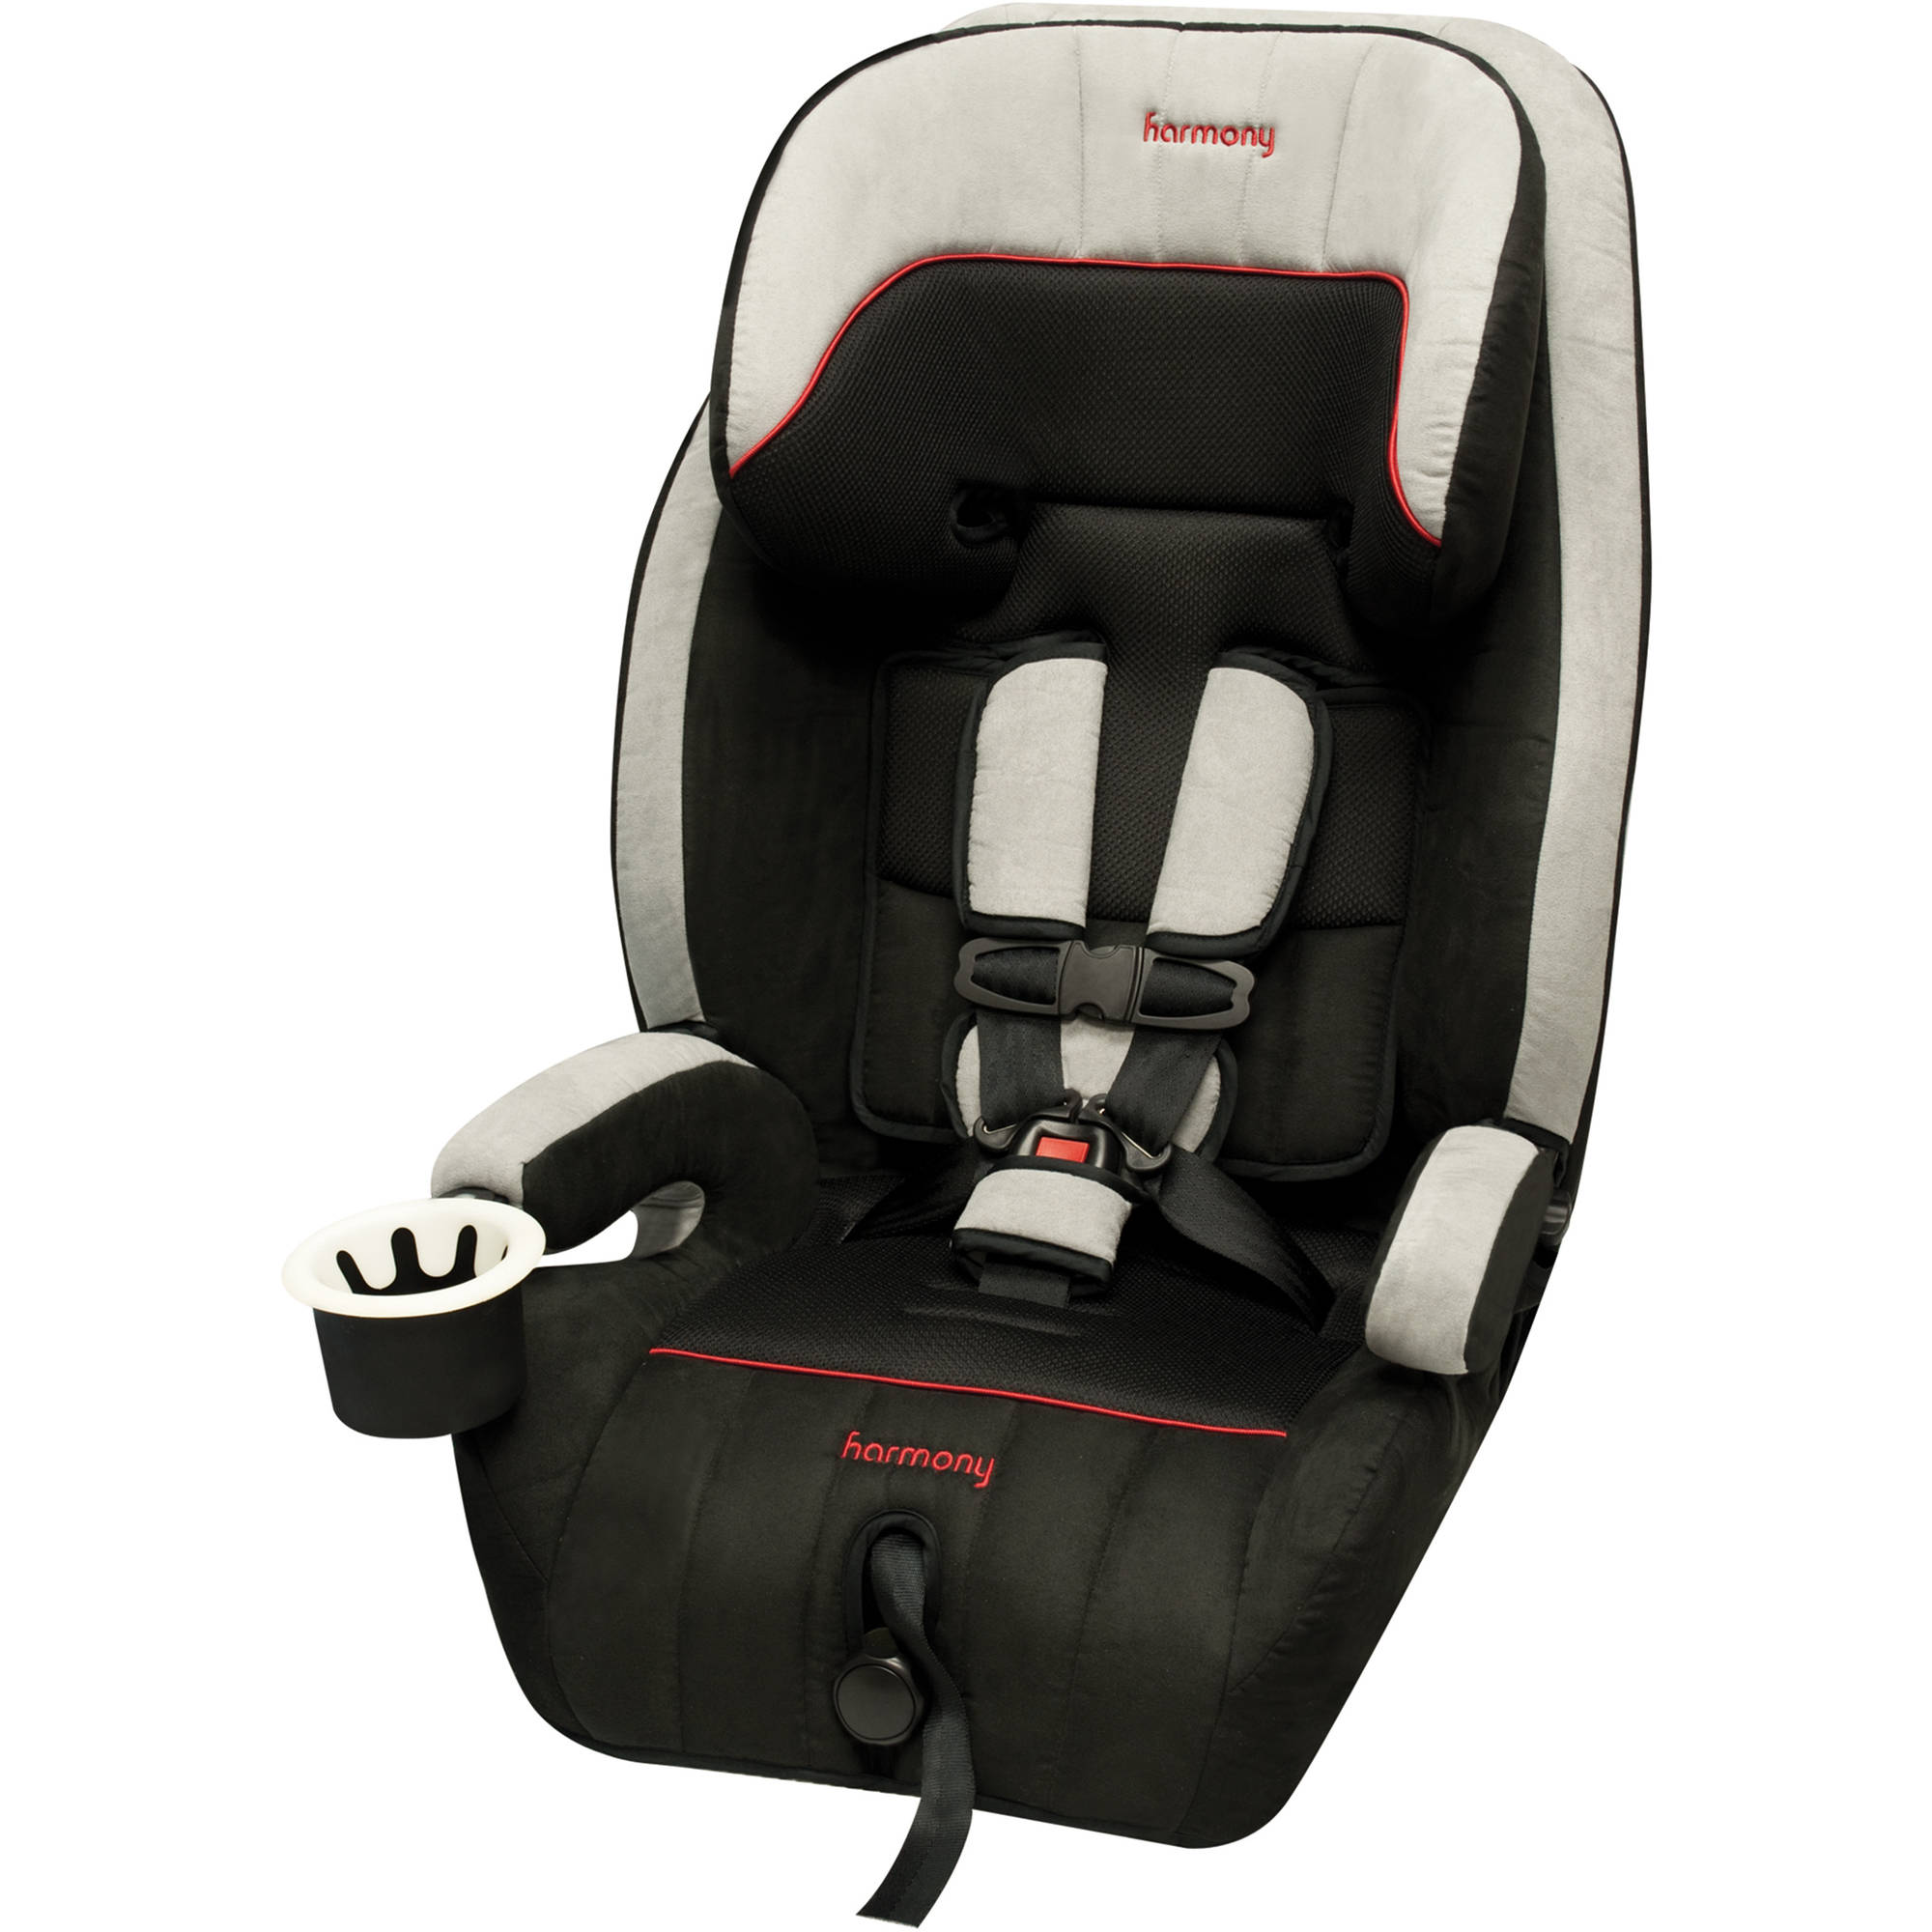 Harmony Defender 360 3-in-1 Convertible Car Seat